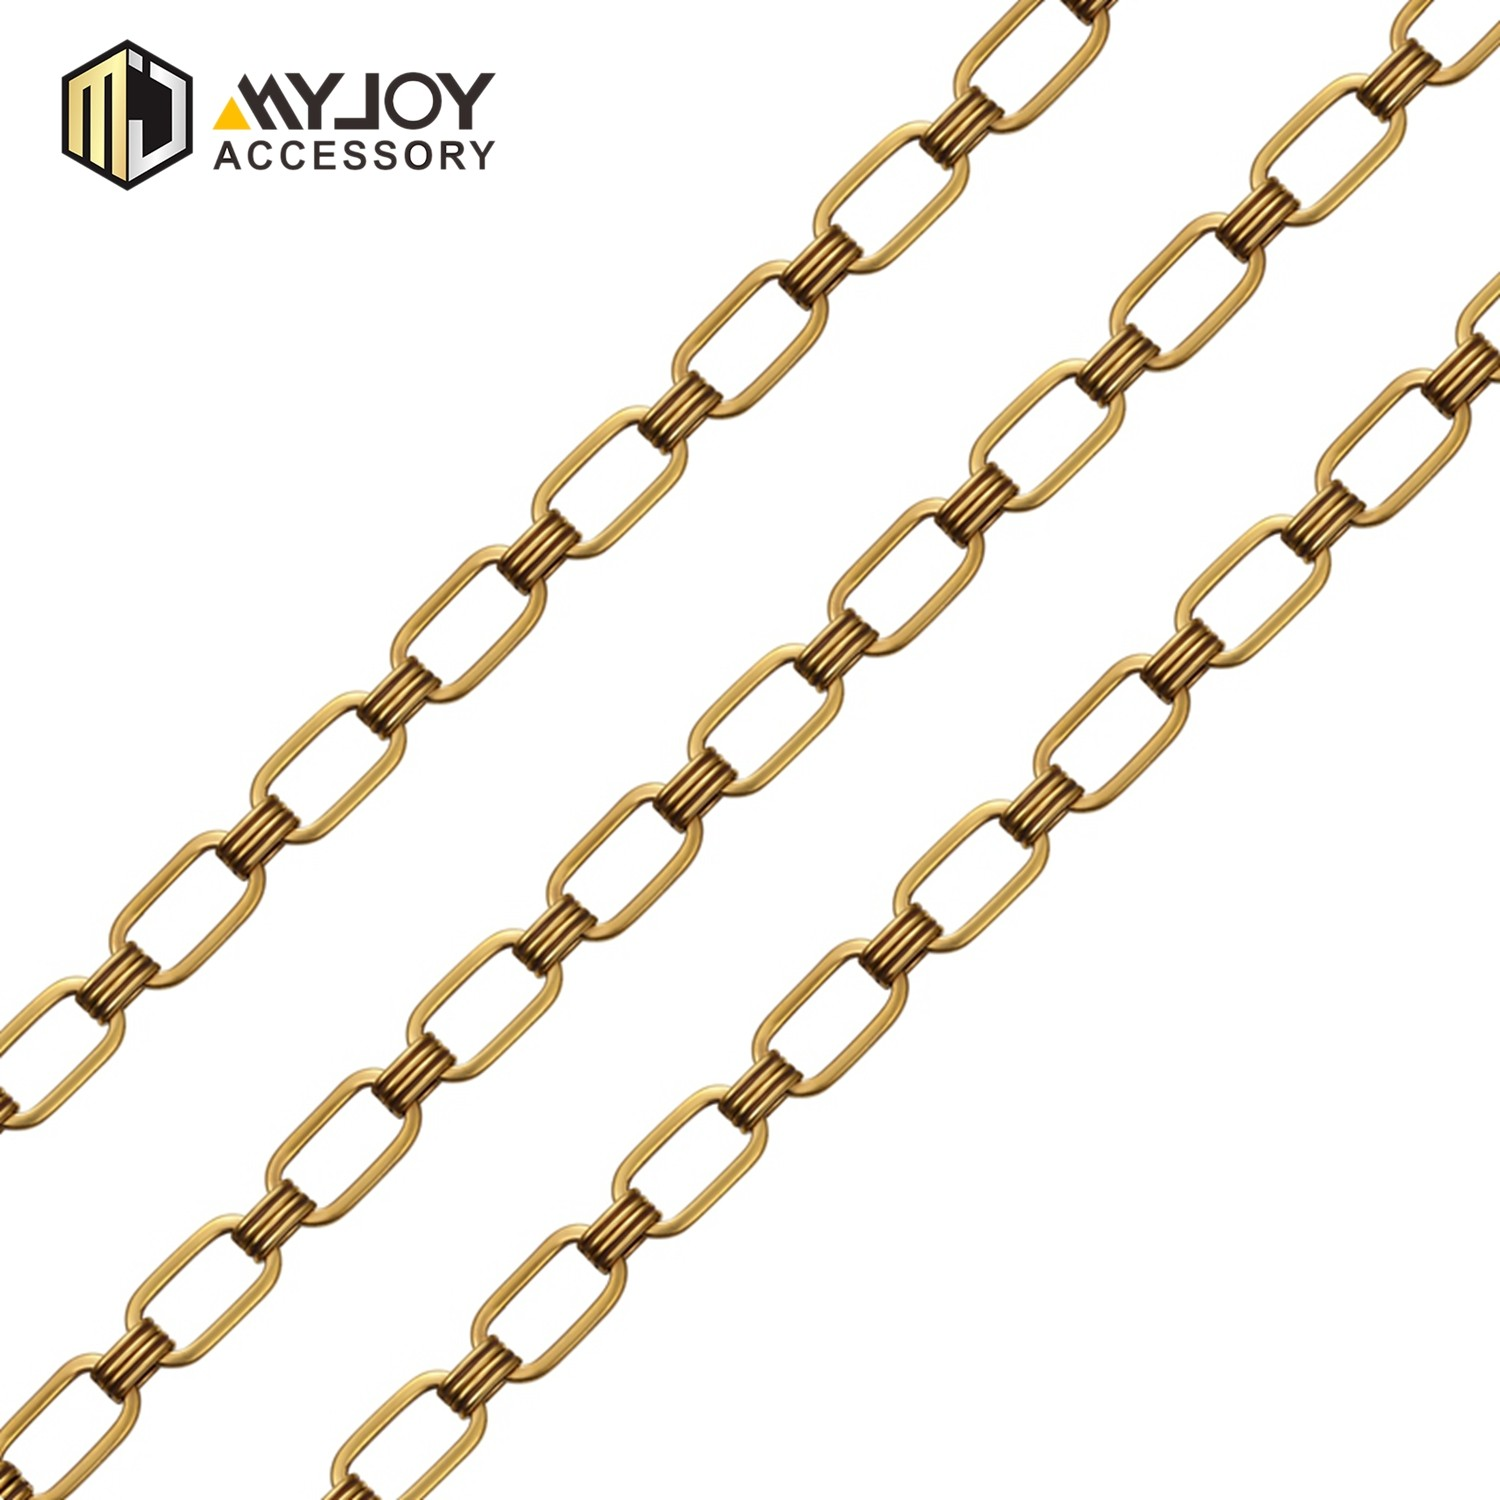 MYJOY New chain strap factory for handbag-3